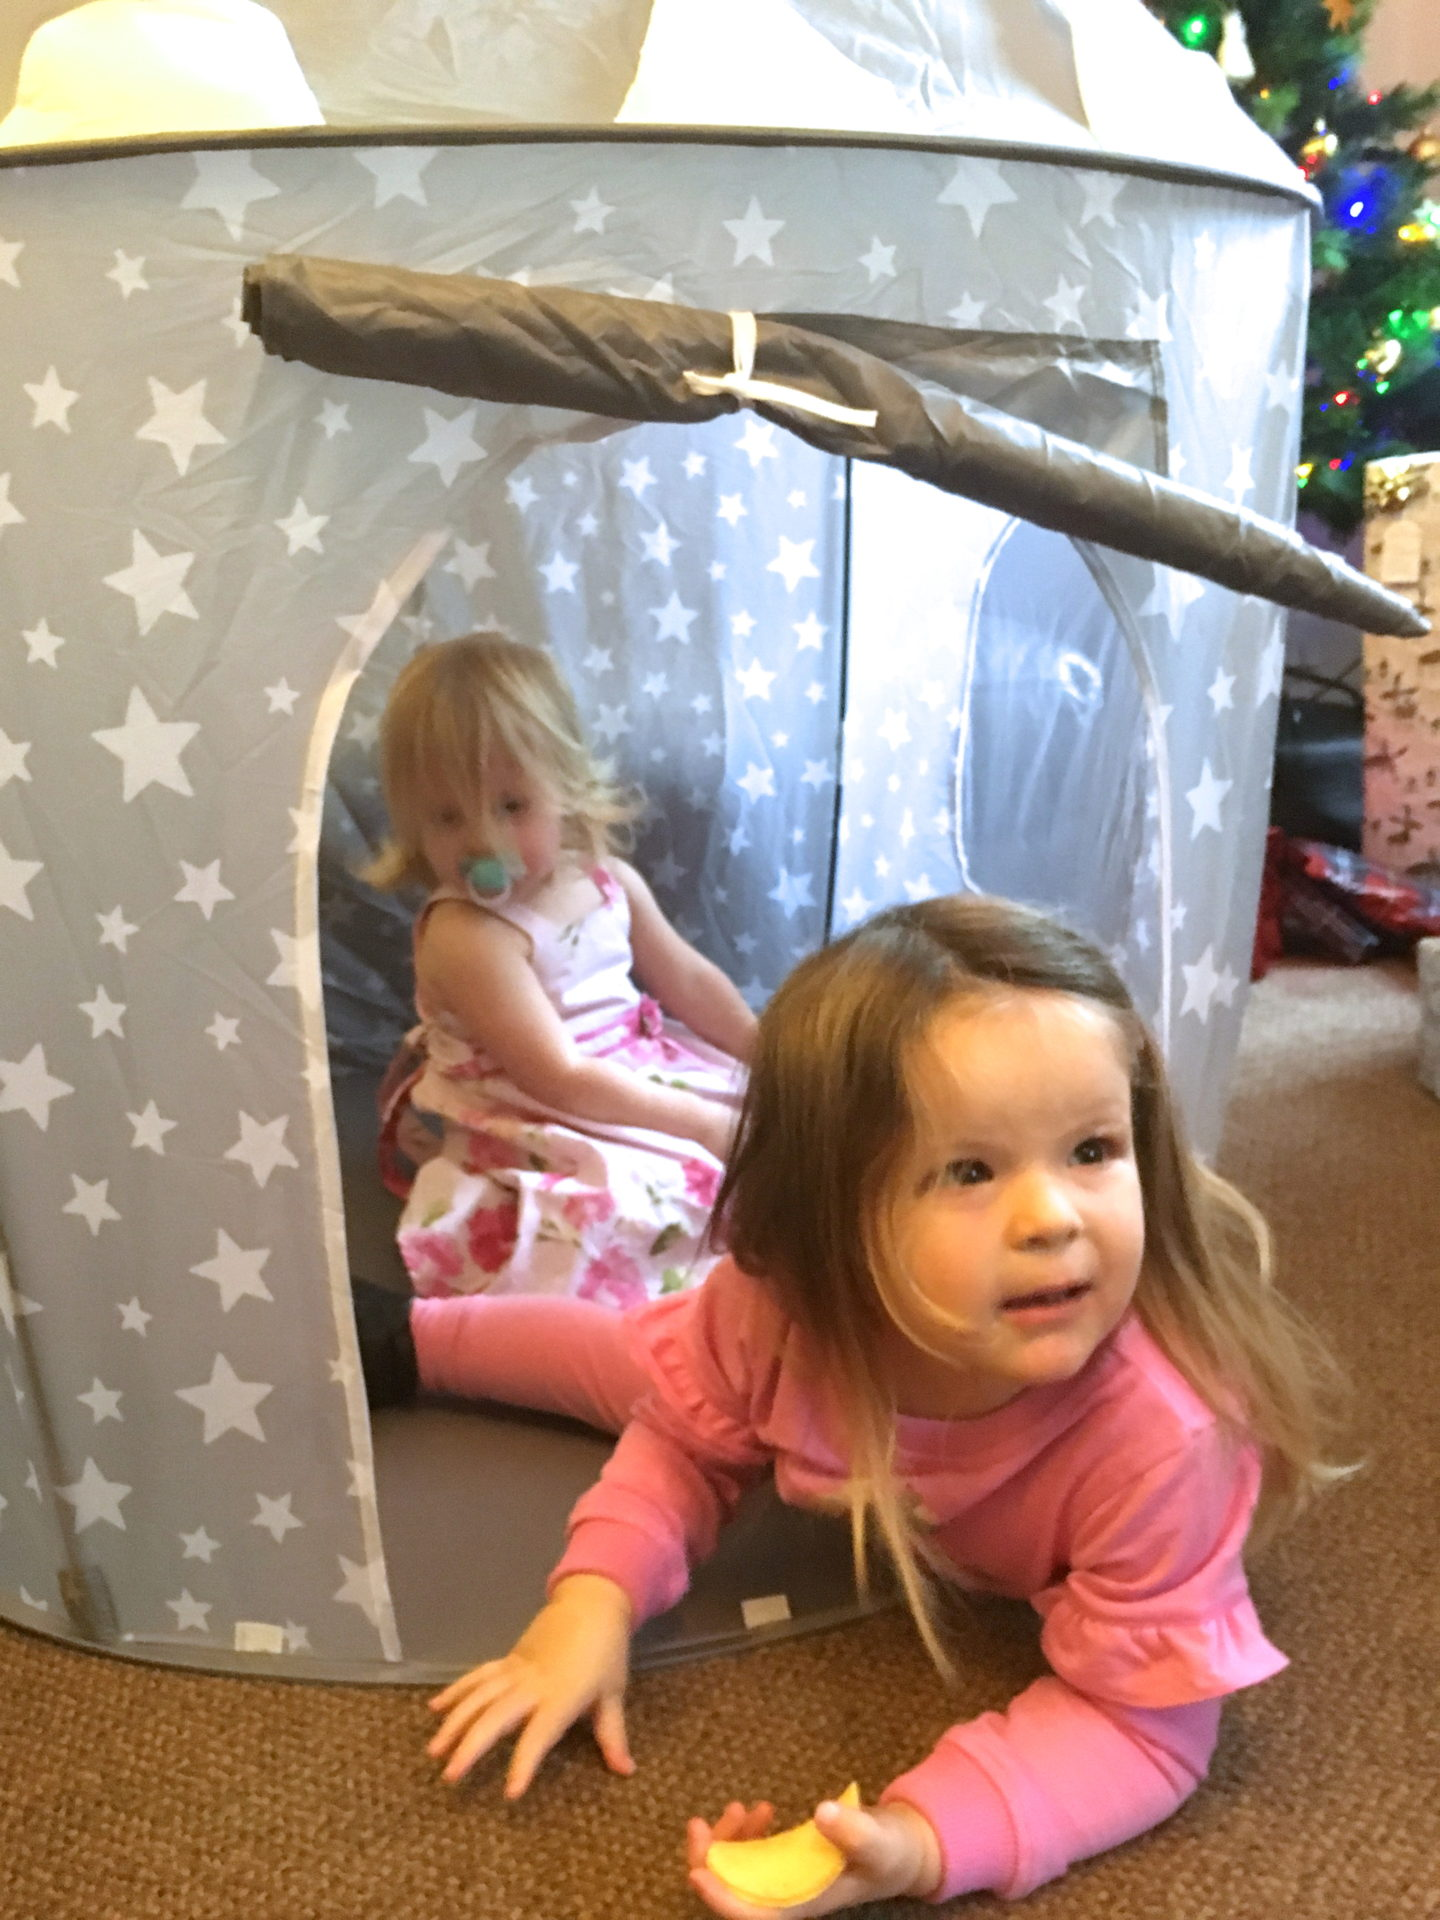 two toddler sisters sitting in a play tent